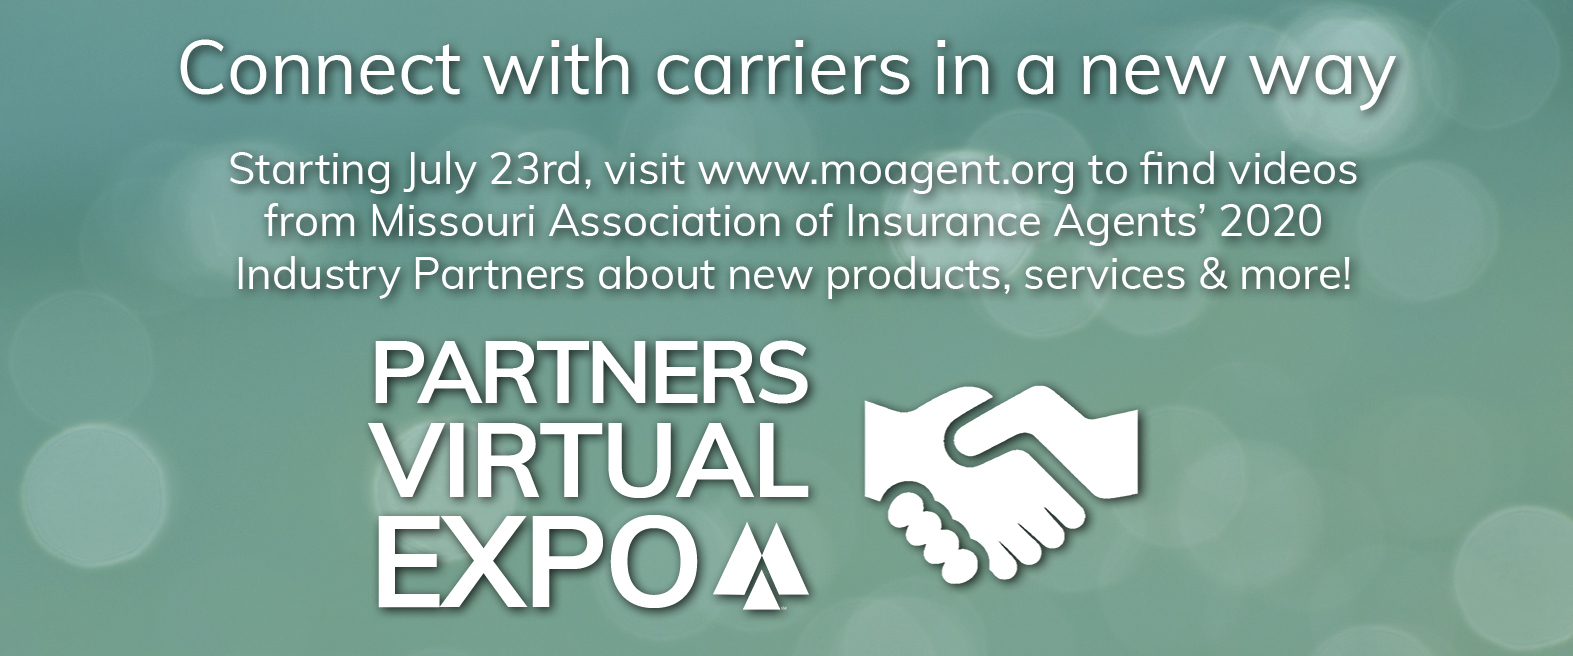 Partners Virtual Expo